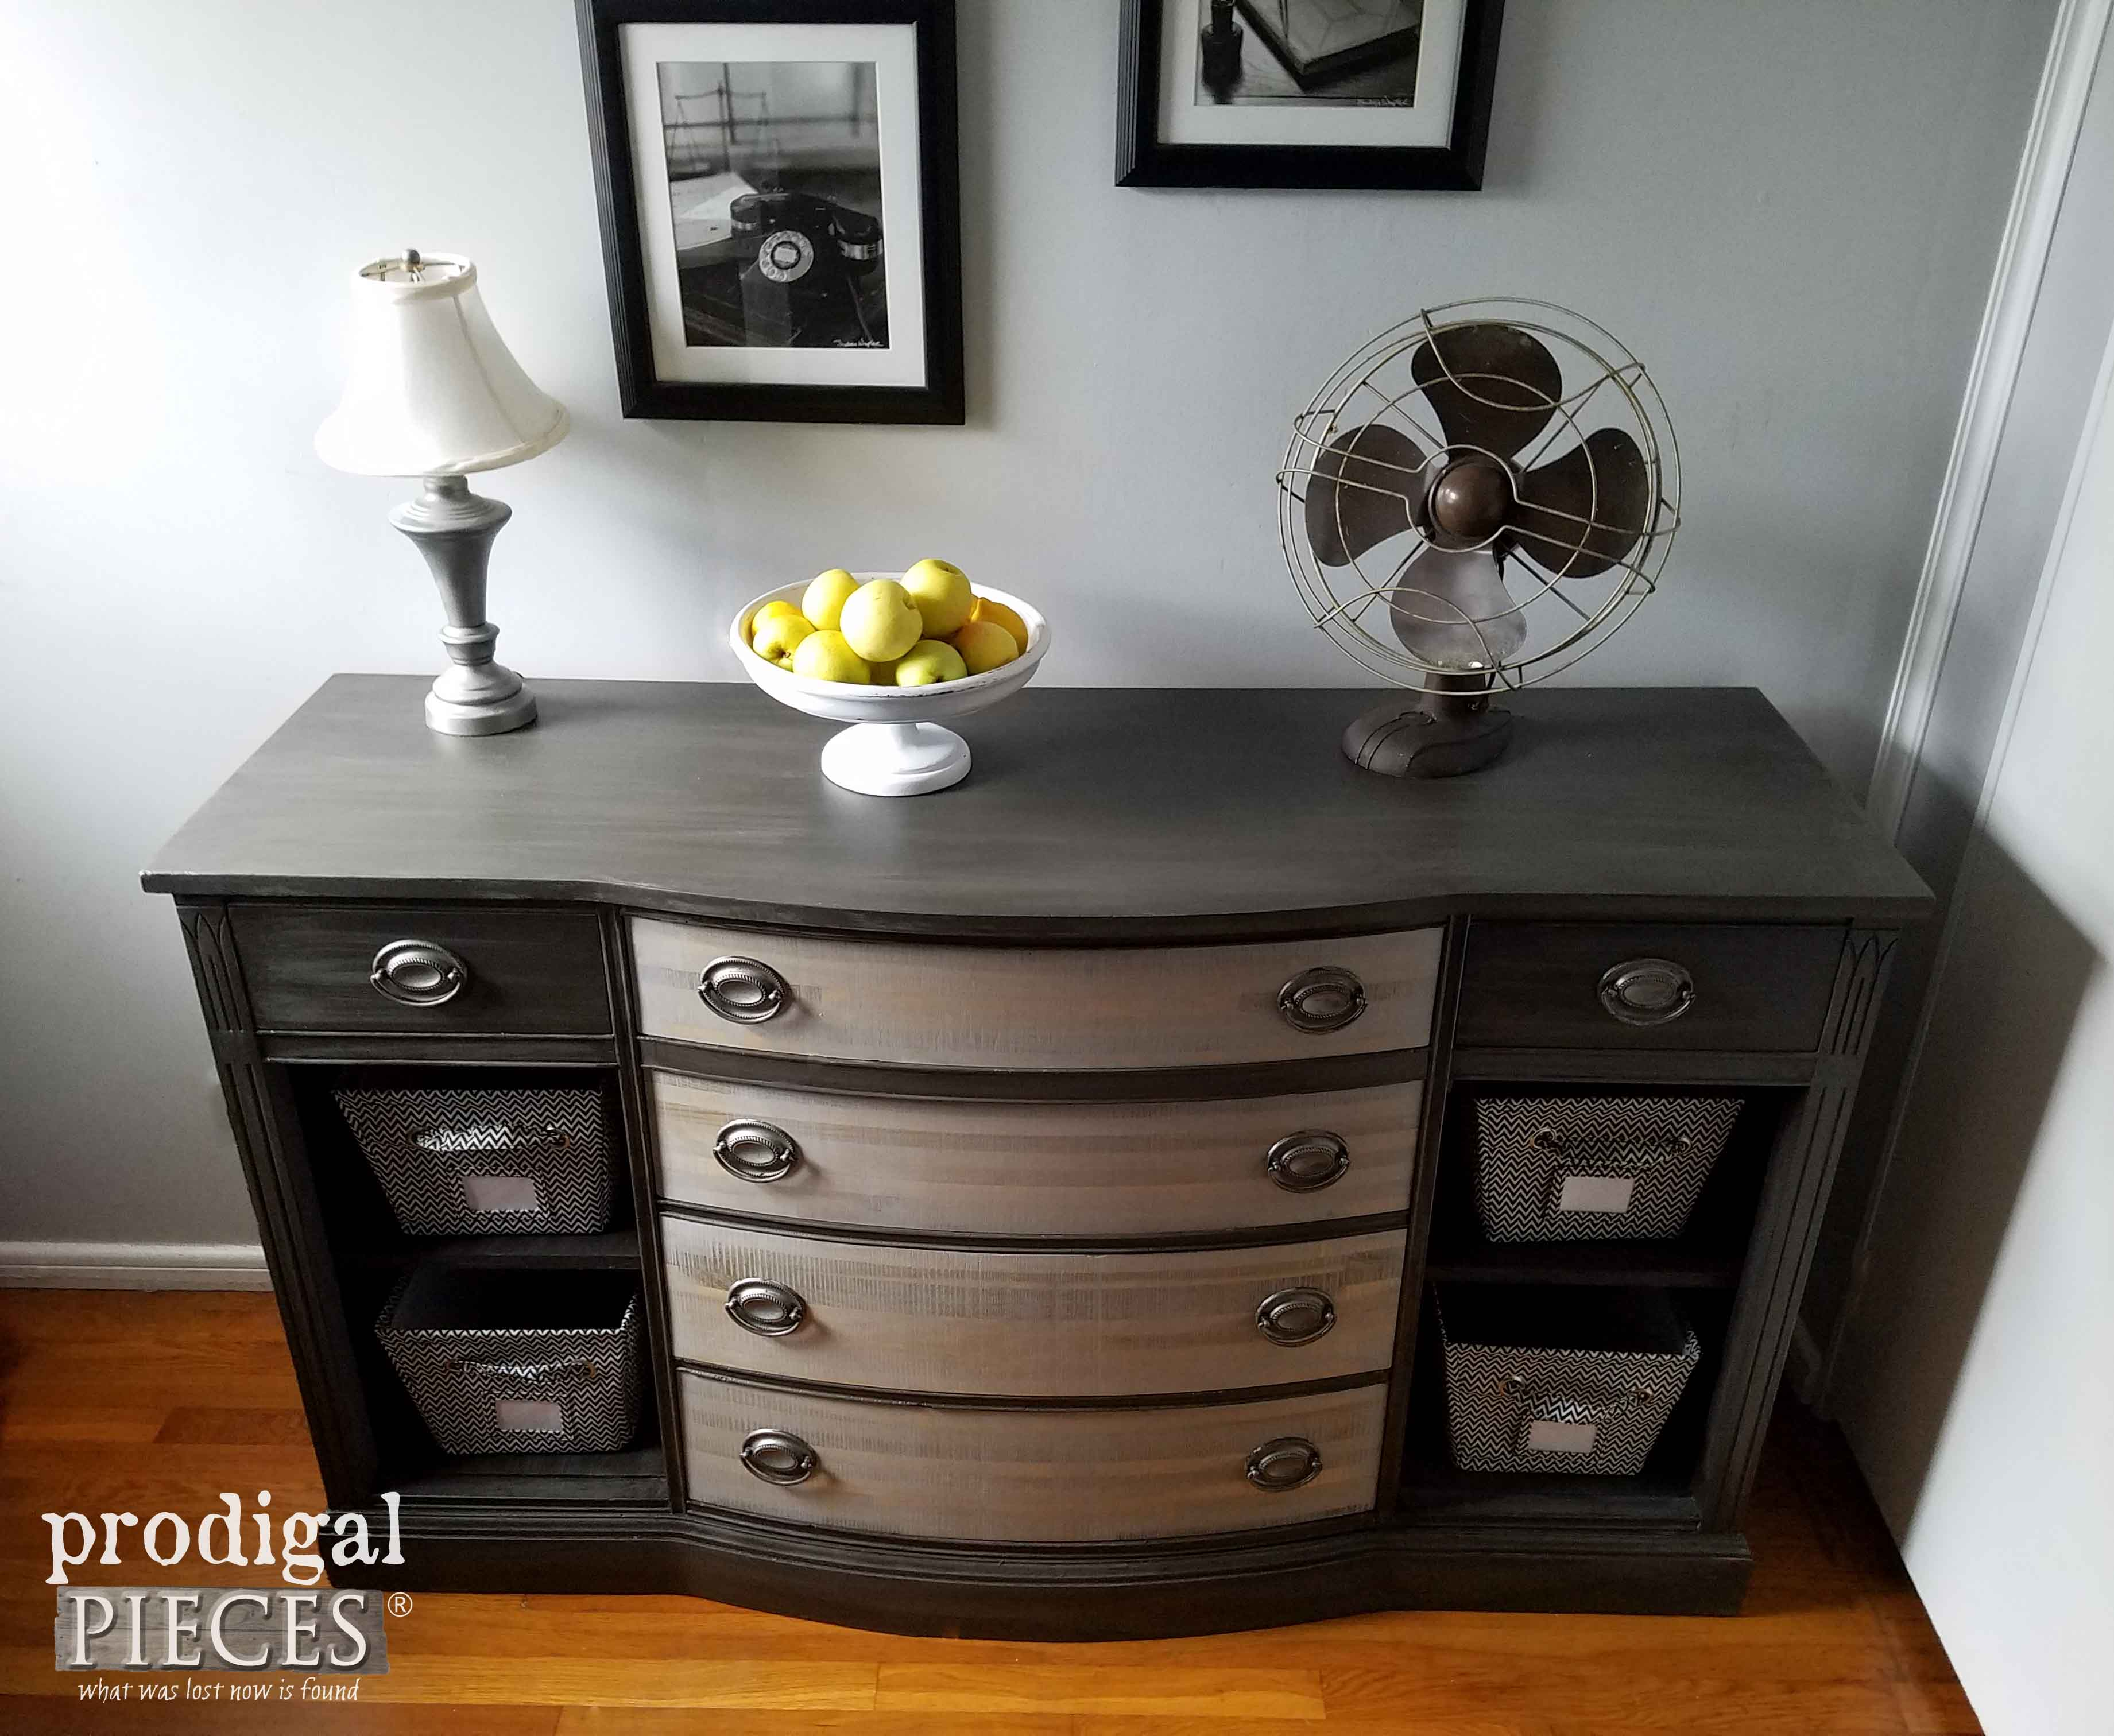 Updated Vintage Buffet Made Over by Teenage Boy | Prodigal Pieces | www.prodigalpieces.com